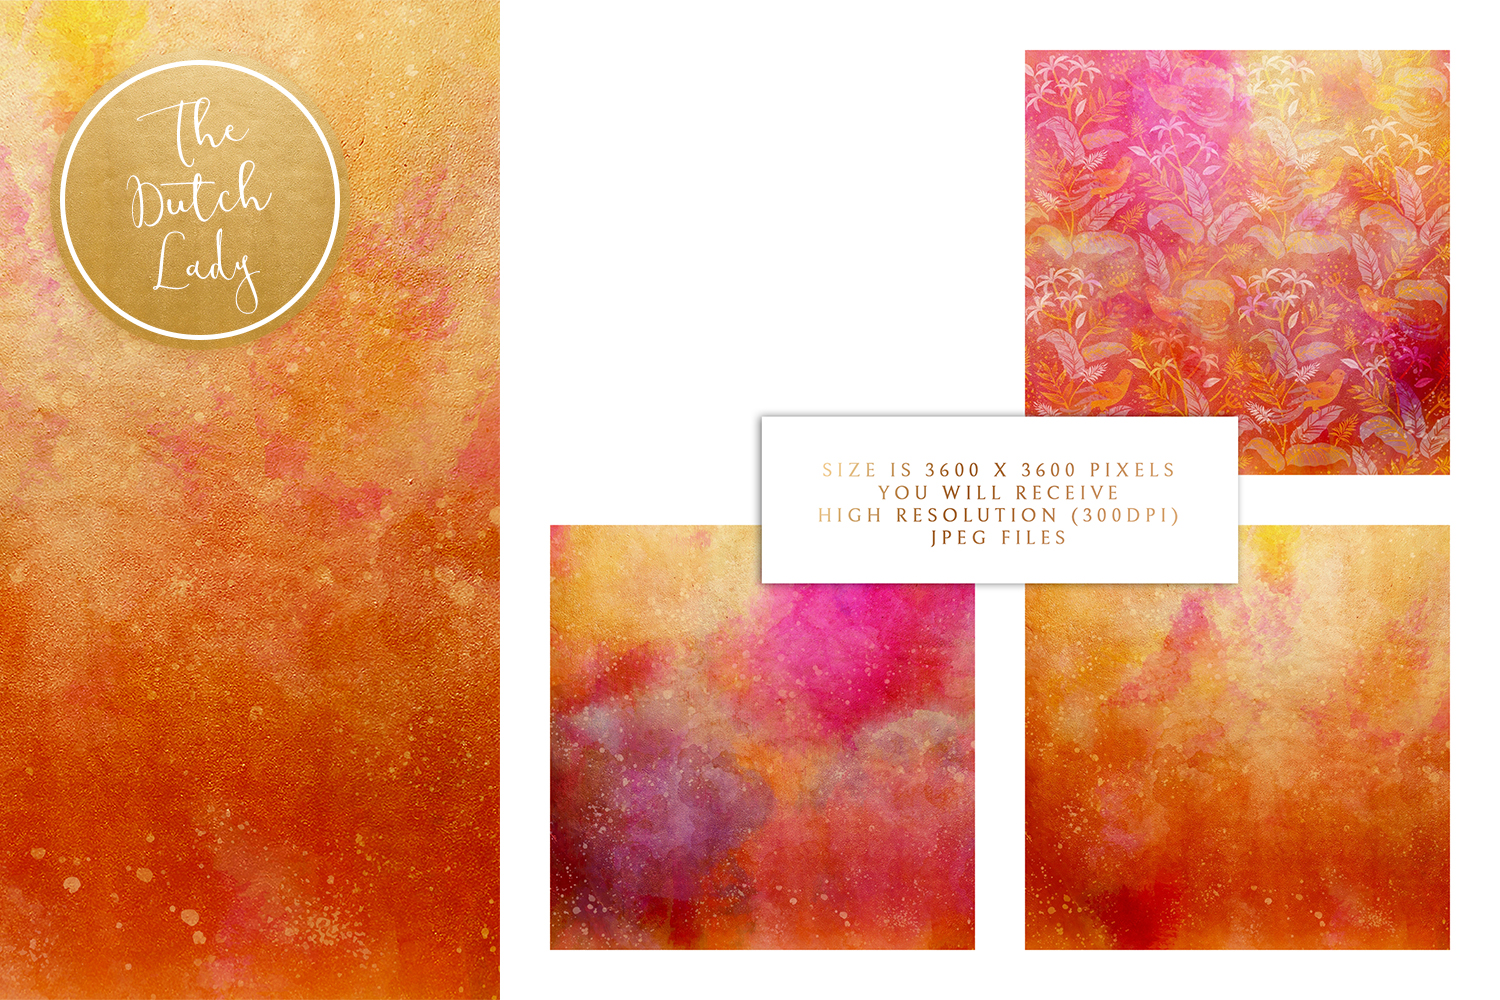 Floral Backgrounds & Paper Designs - Audrey example image 3